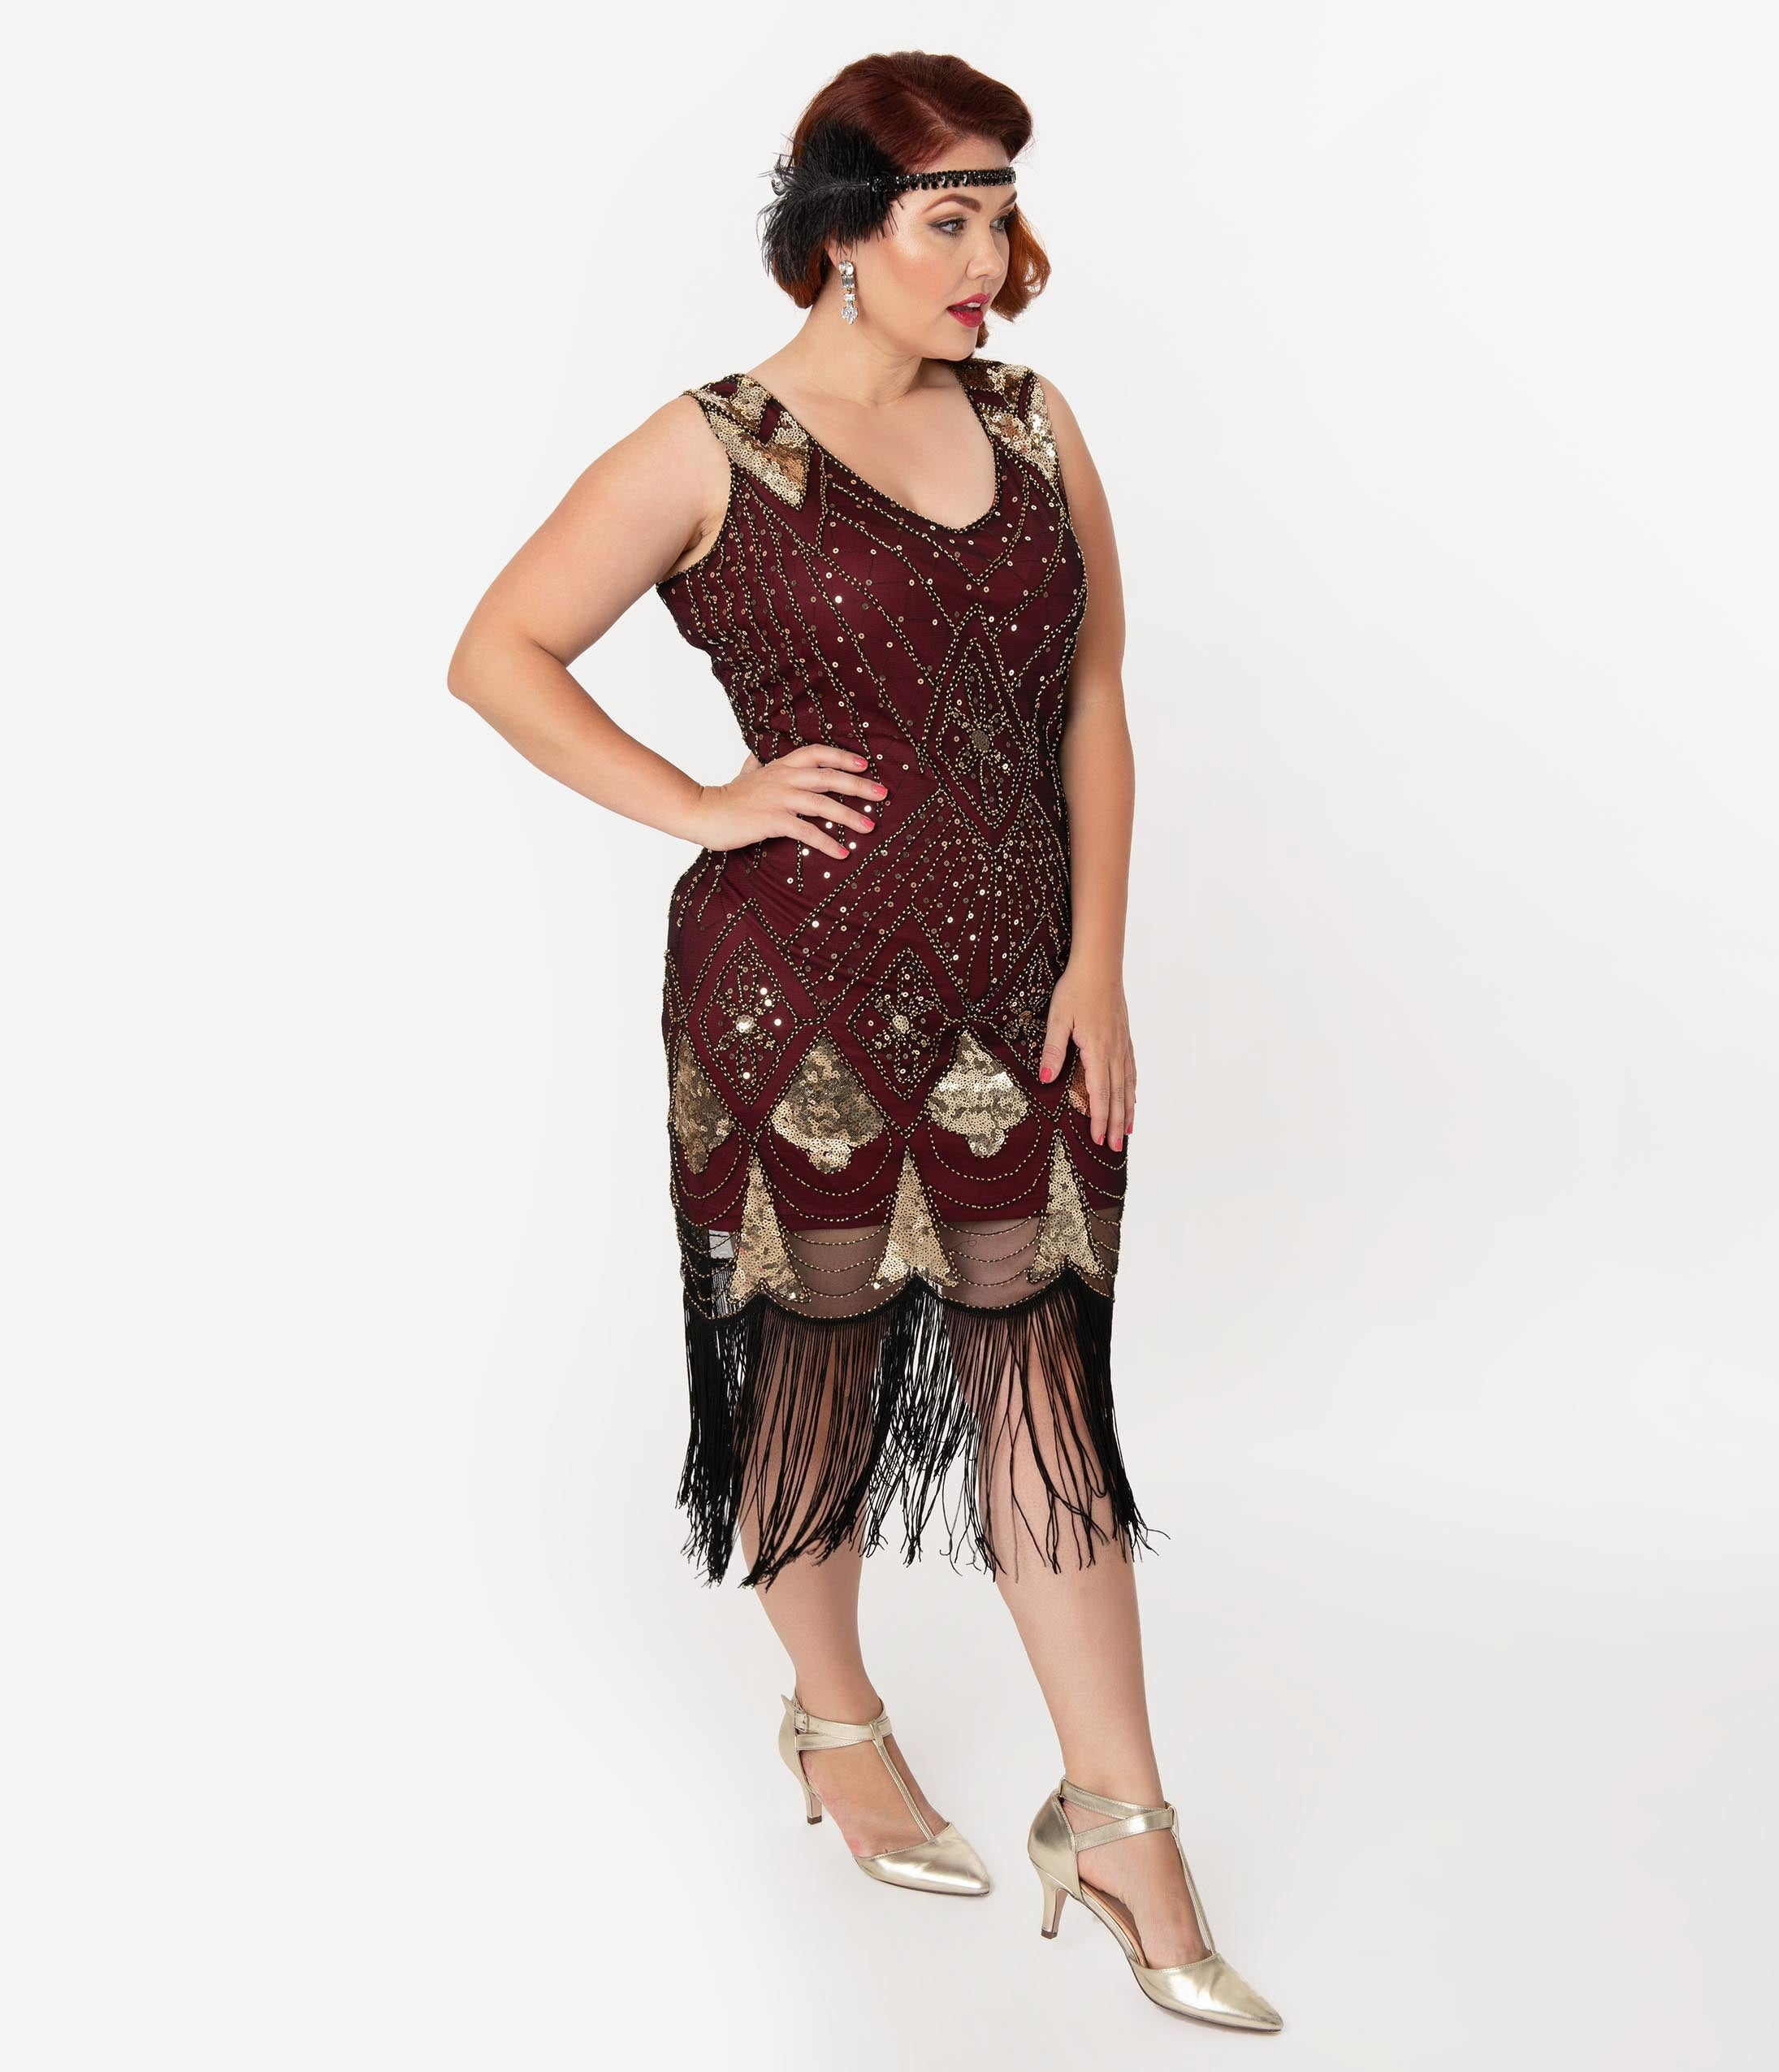 1920s Plus Size Flapper Dresses, Gatsby Dresses, Flapper Costumes Unique Vintage Plus Size Burgundy  Gold Sequin Lina Fringe Flapper Dress $98.00 AT vintagedancer.com